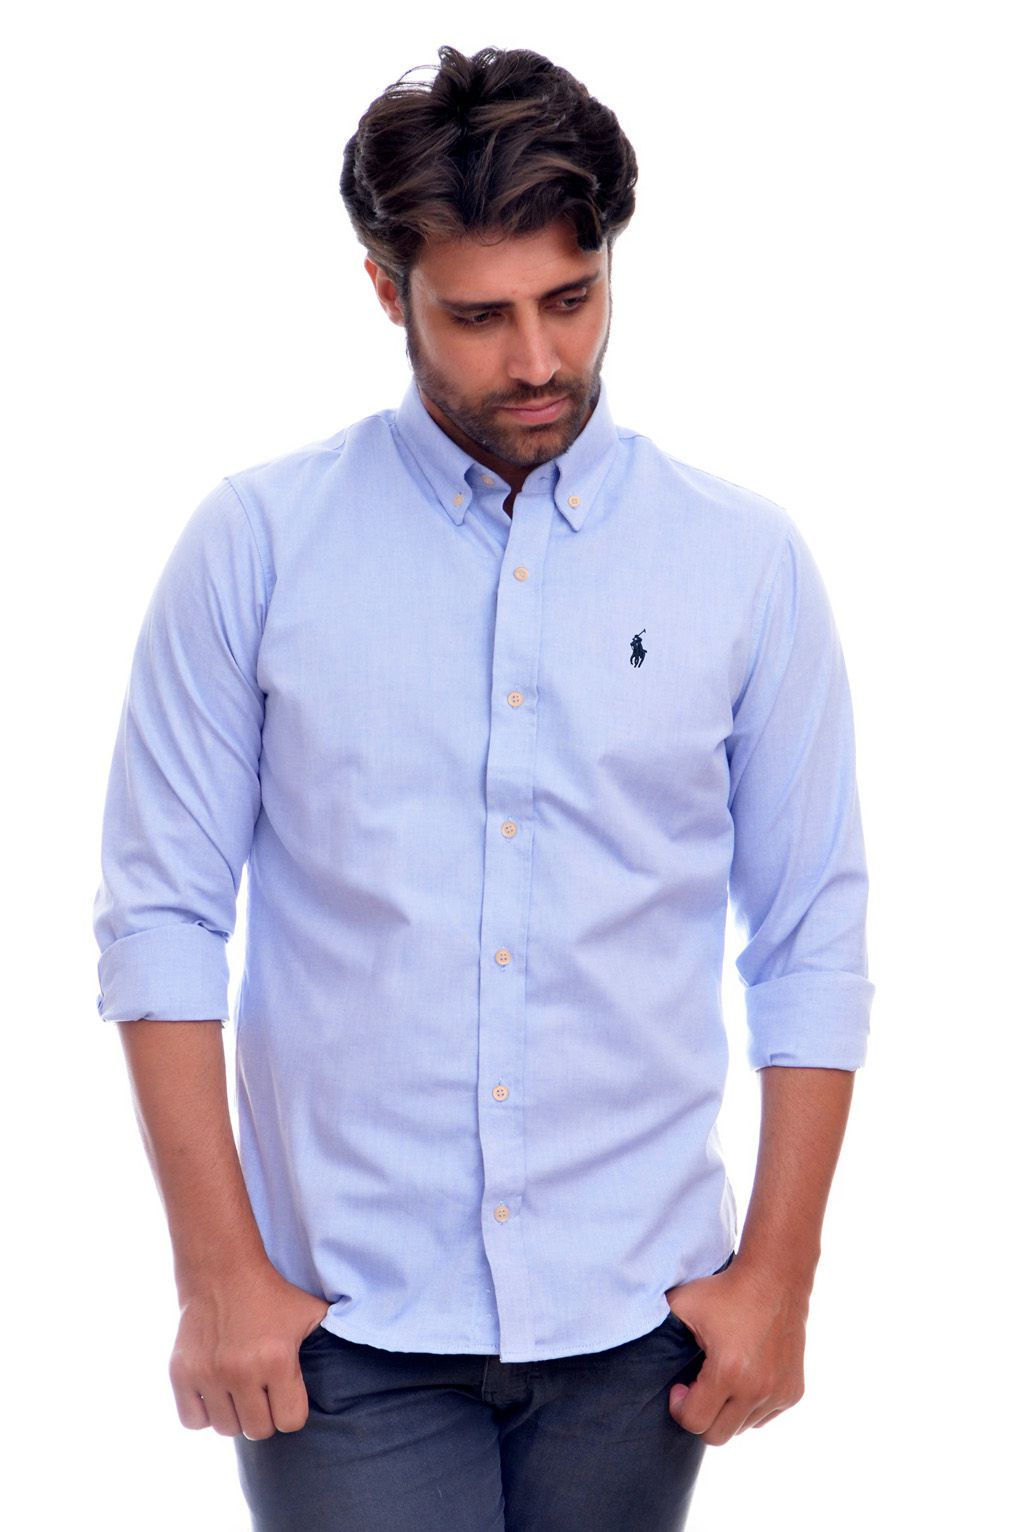 CAMISA SOCIAL RL OXFORD AZUL CLARO MR - Custom Fit